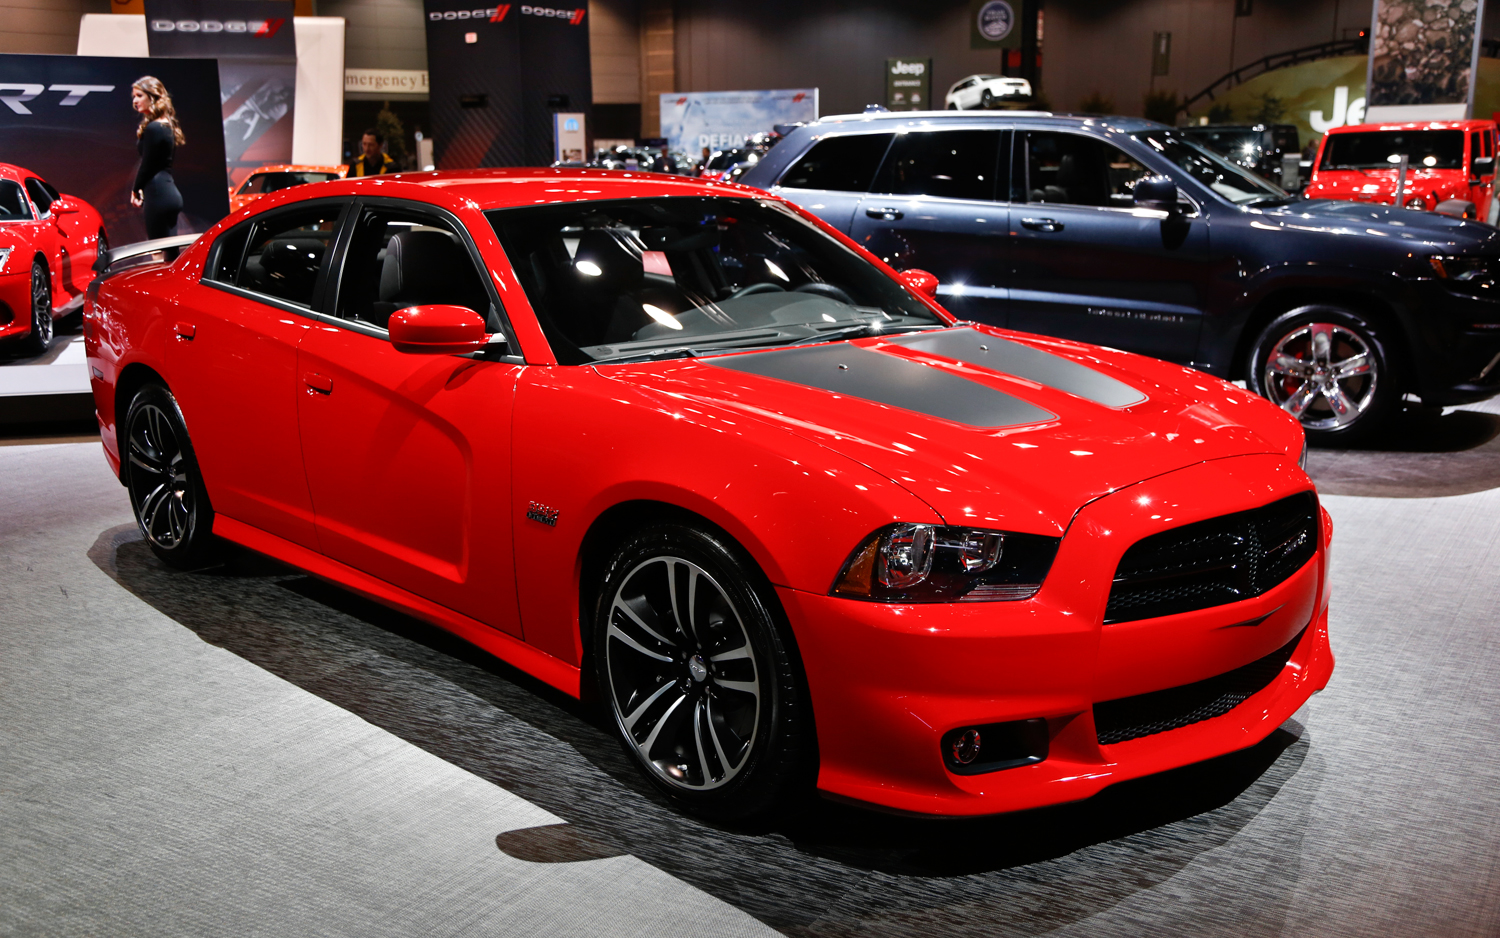 new 2014 dodge charger srt8 automotive photo picture desktop download free hd. Black Bedroom Furniture Sets. Home Design Ideas